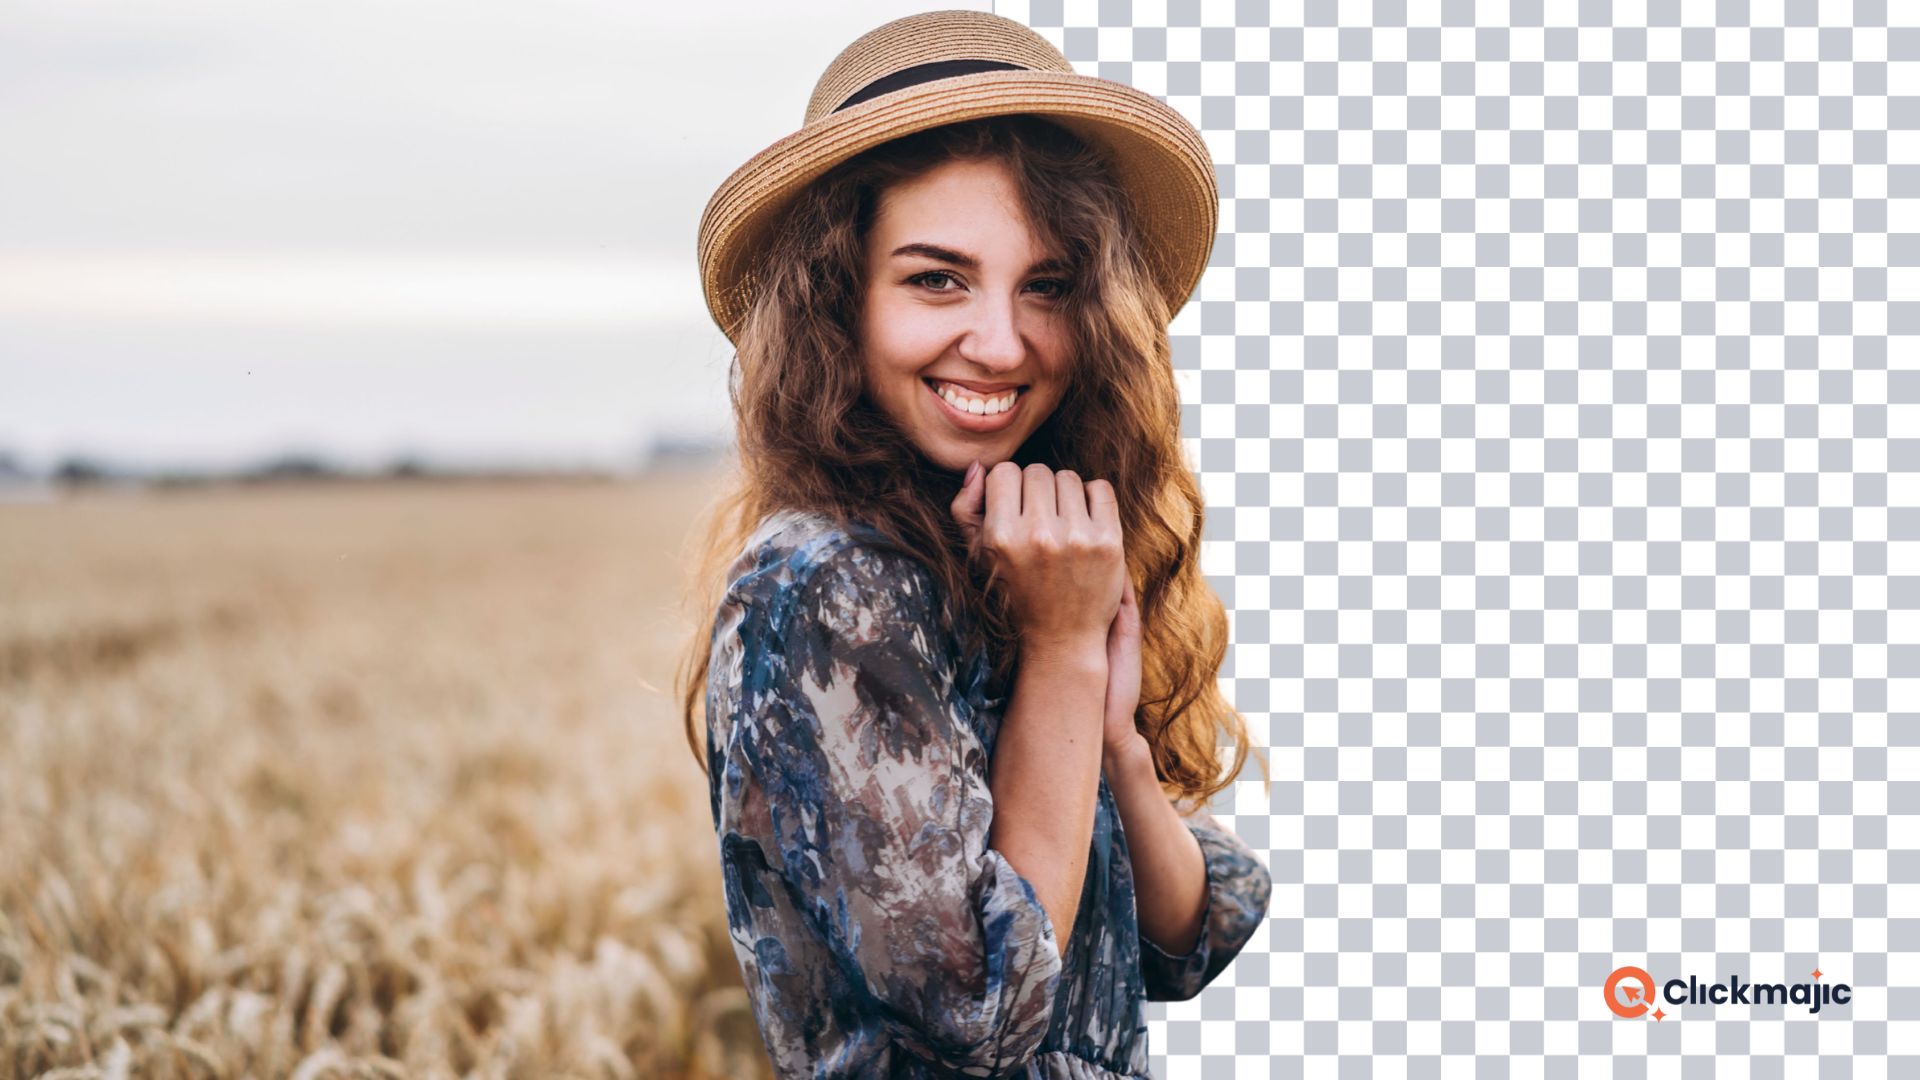 Remove image background from person in just 5 seconds